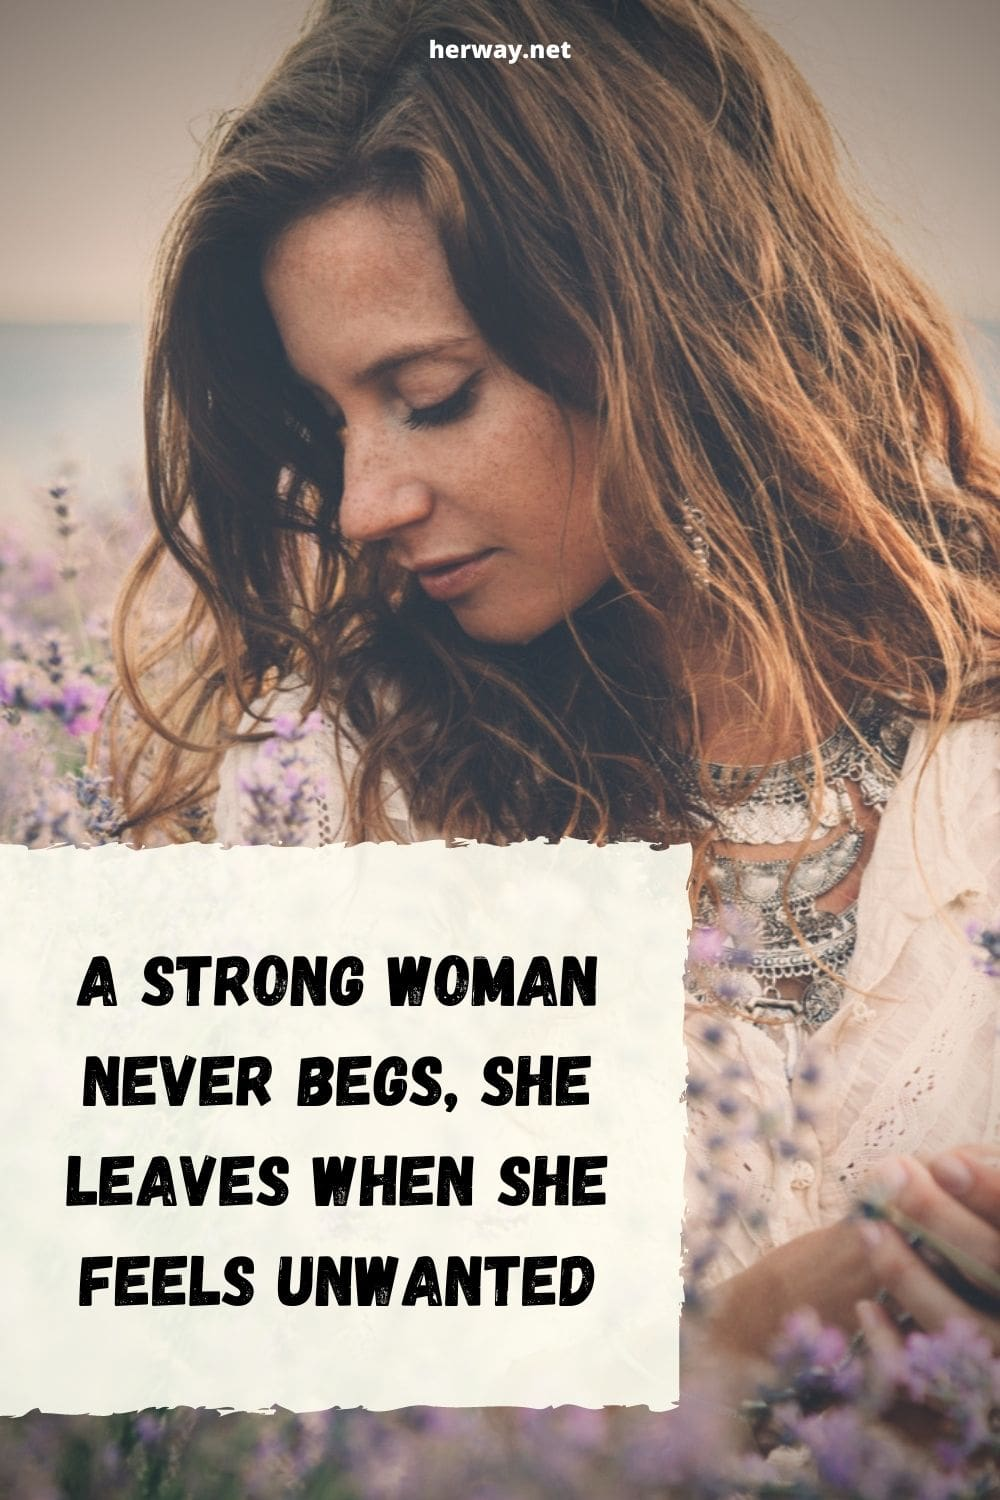 A Strong Woman Never Begs, She Leaves When She Feels Unwanted